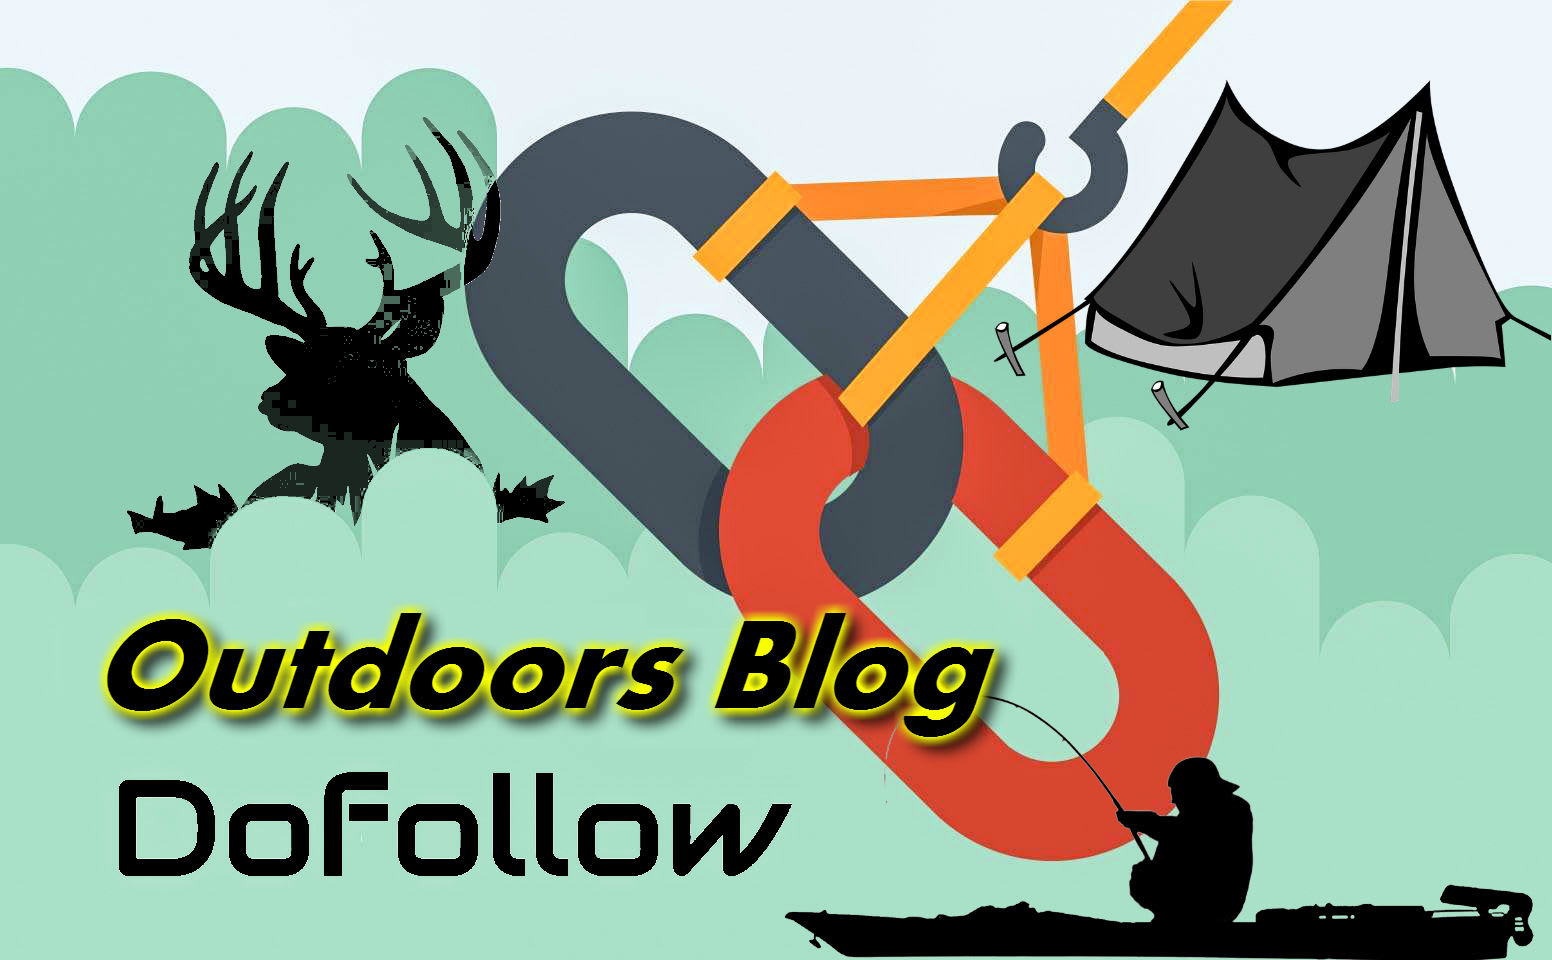 I will add your dofollow link to outdoors blog